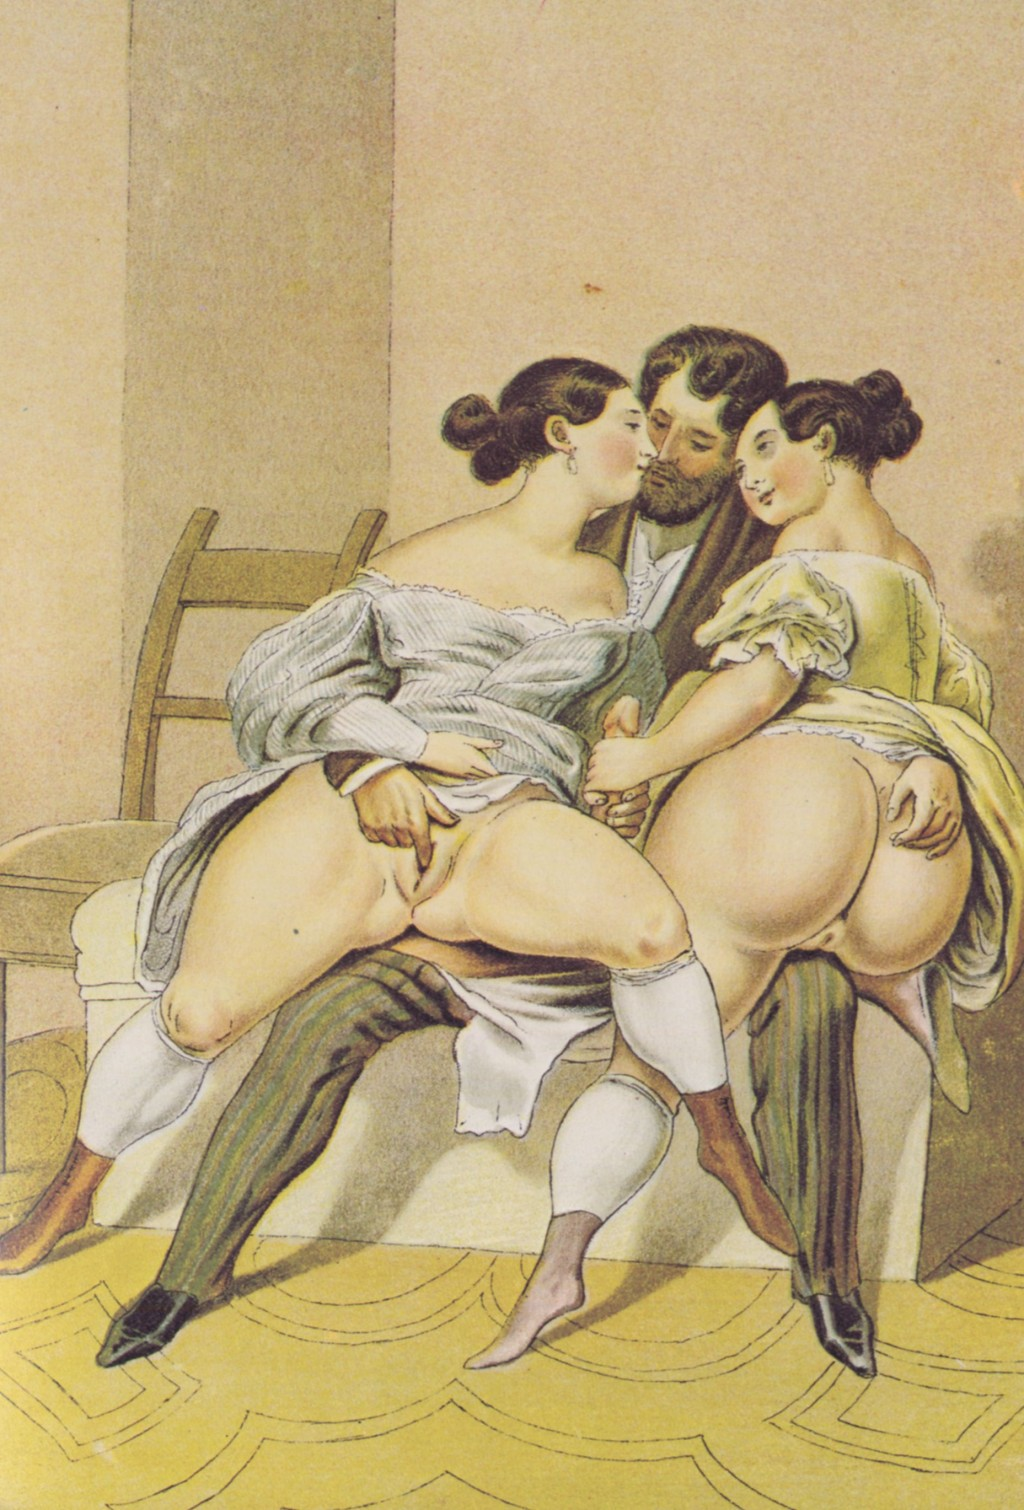 Erotic Lithographs by Peter Fendi: peter-fendis-lithographs_8_20121009_1635351753.jpeg